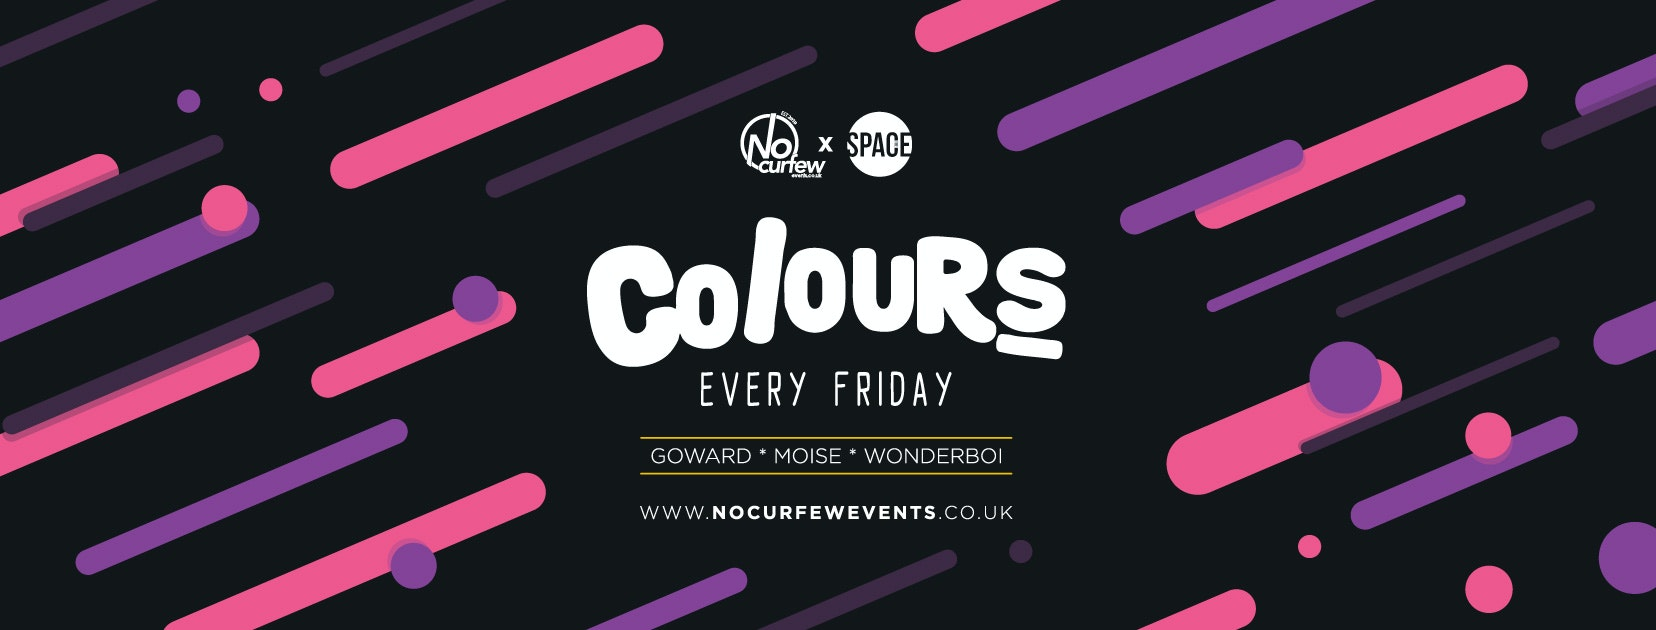 Colours Leeds at Space :: Every Friday :: Half Price Ticket with Free Drink!